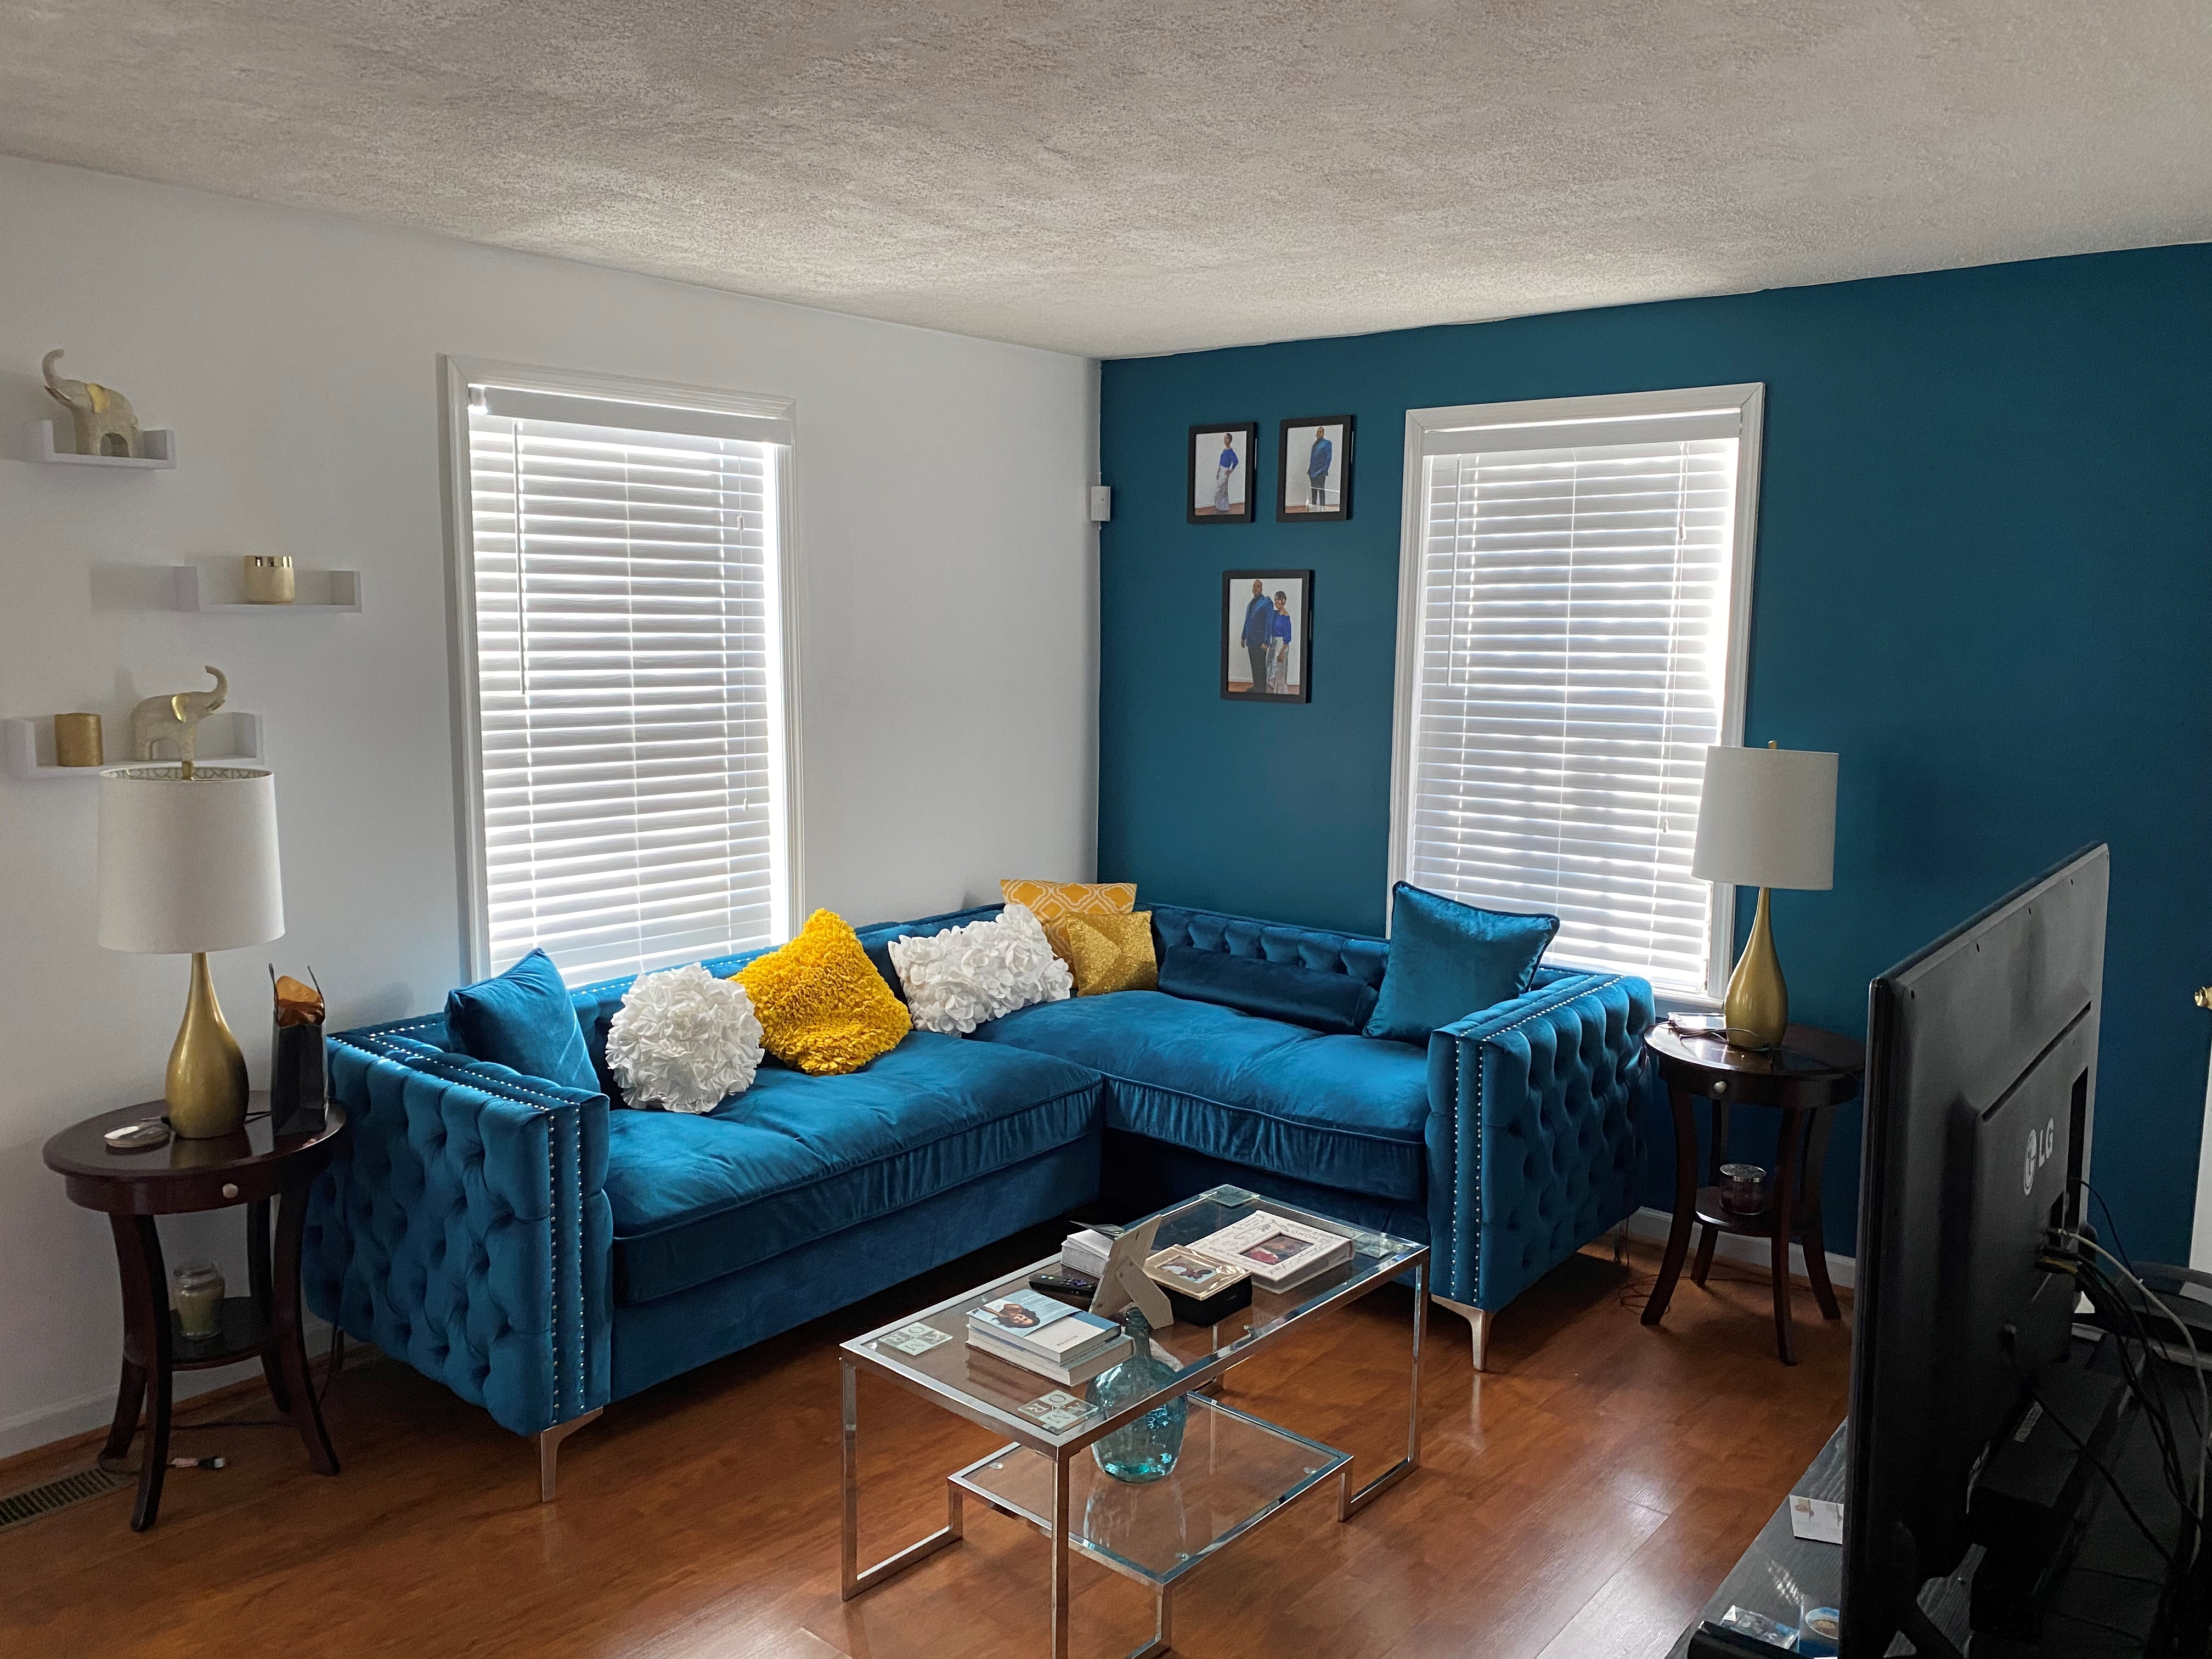 Teal Tufted Couch